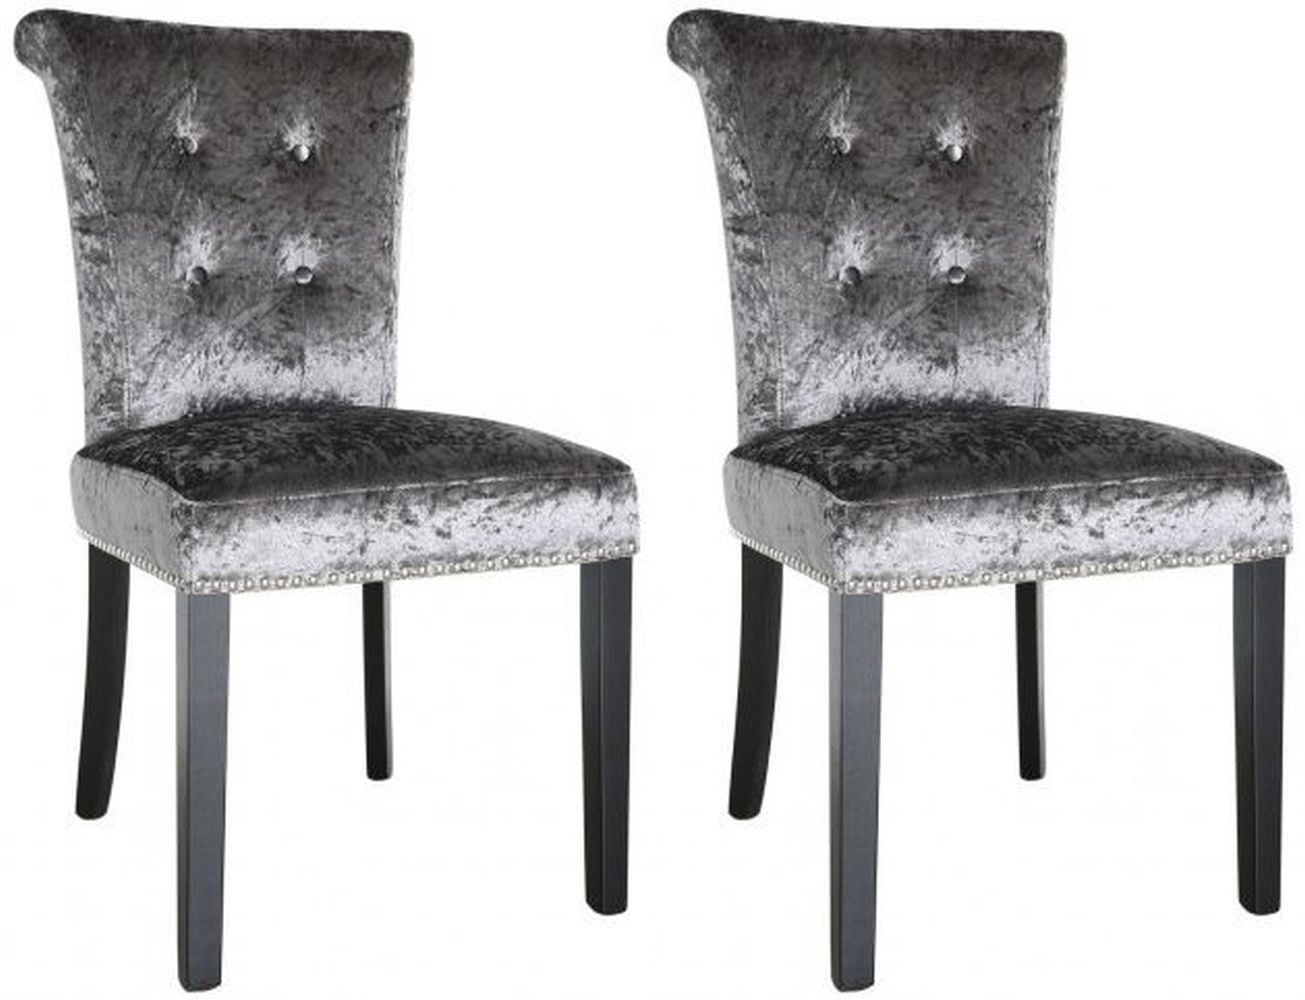 Hardy Dining Chair Silver Crushed Velvet (Pair)